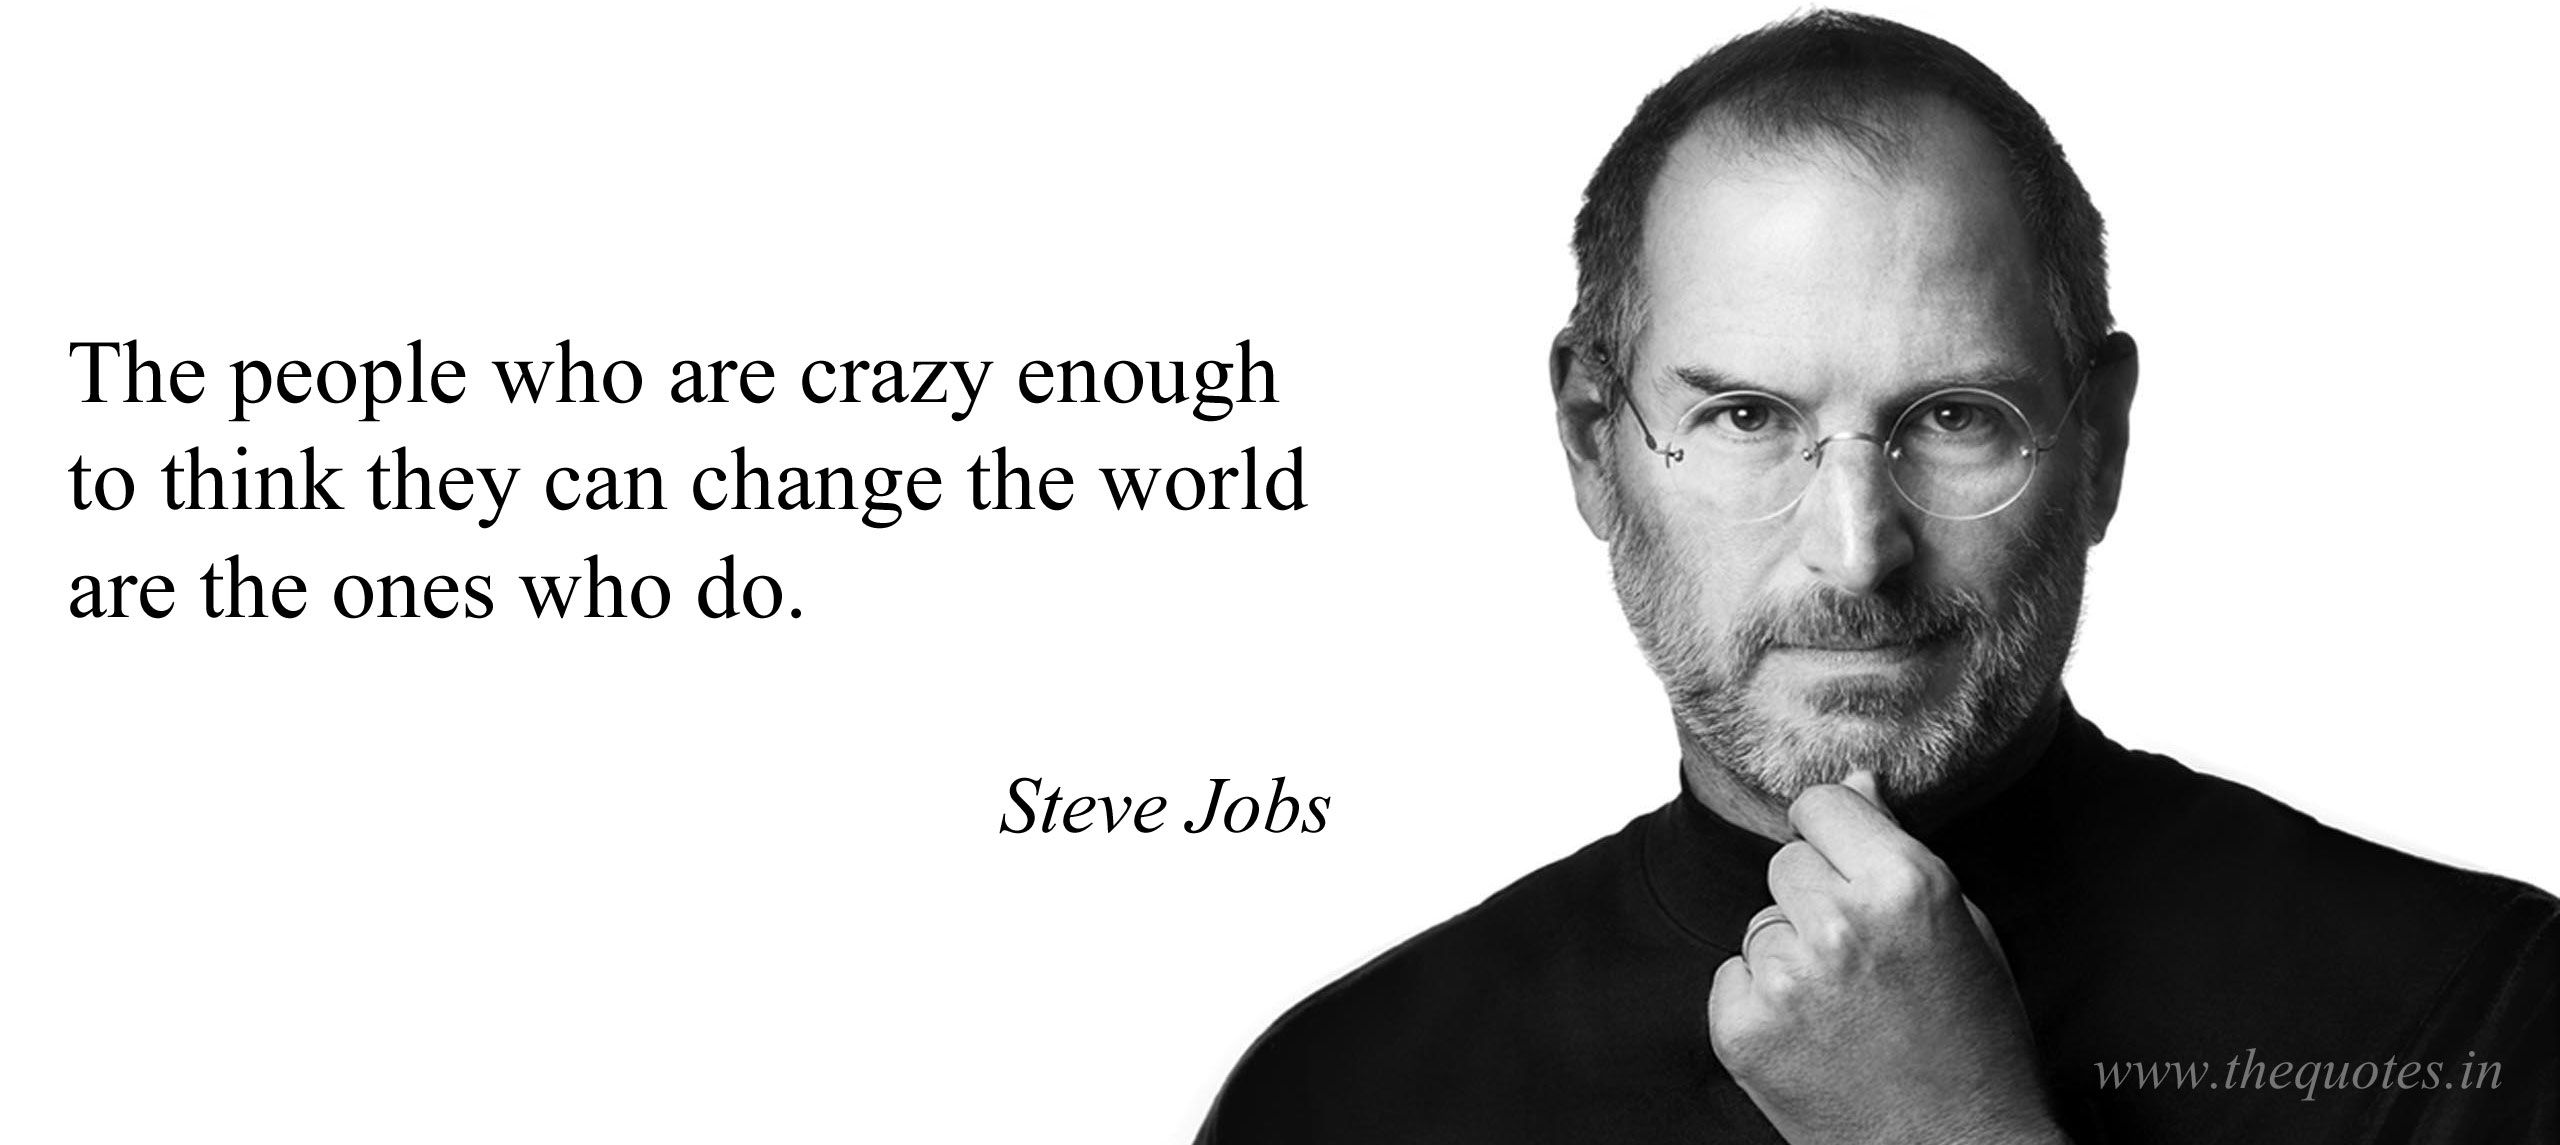 The people who are crazy enough to think they can change